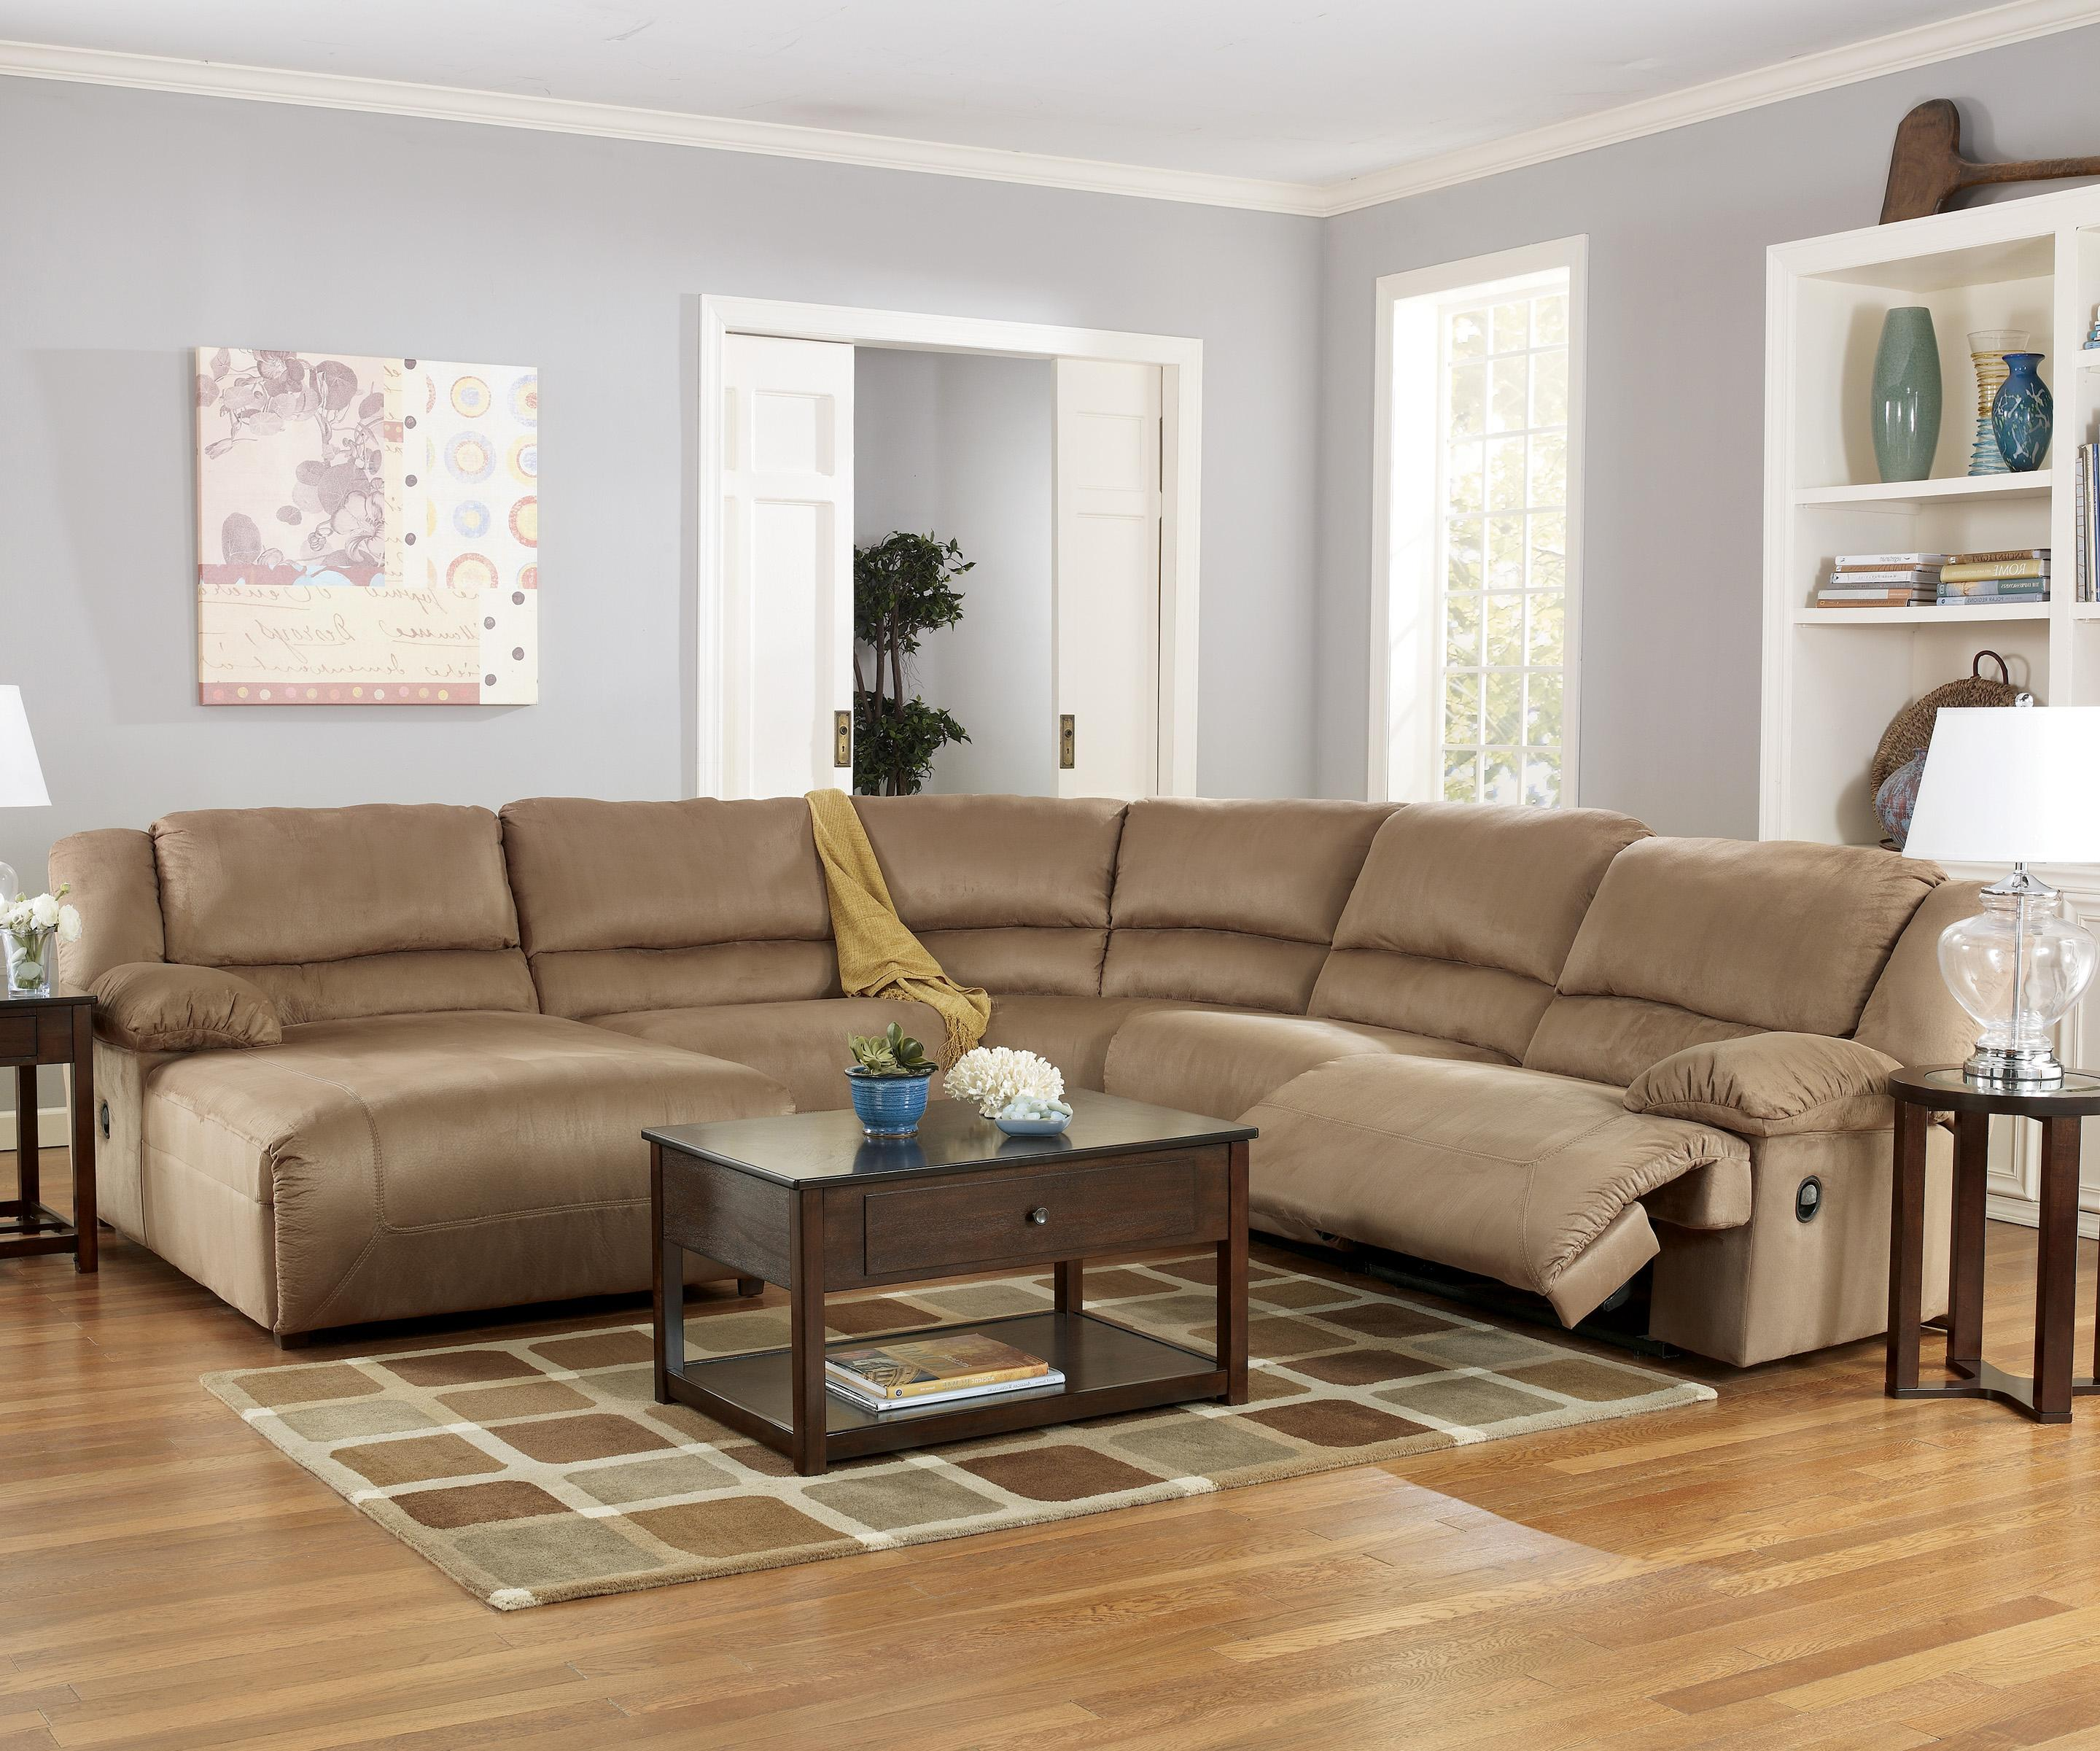 Ashley signature design hogan mocha 5 piece motion for Ashley chaise sectional